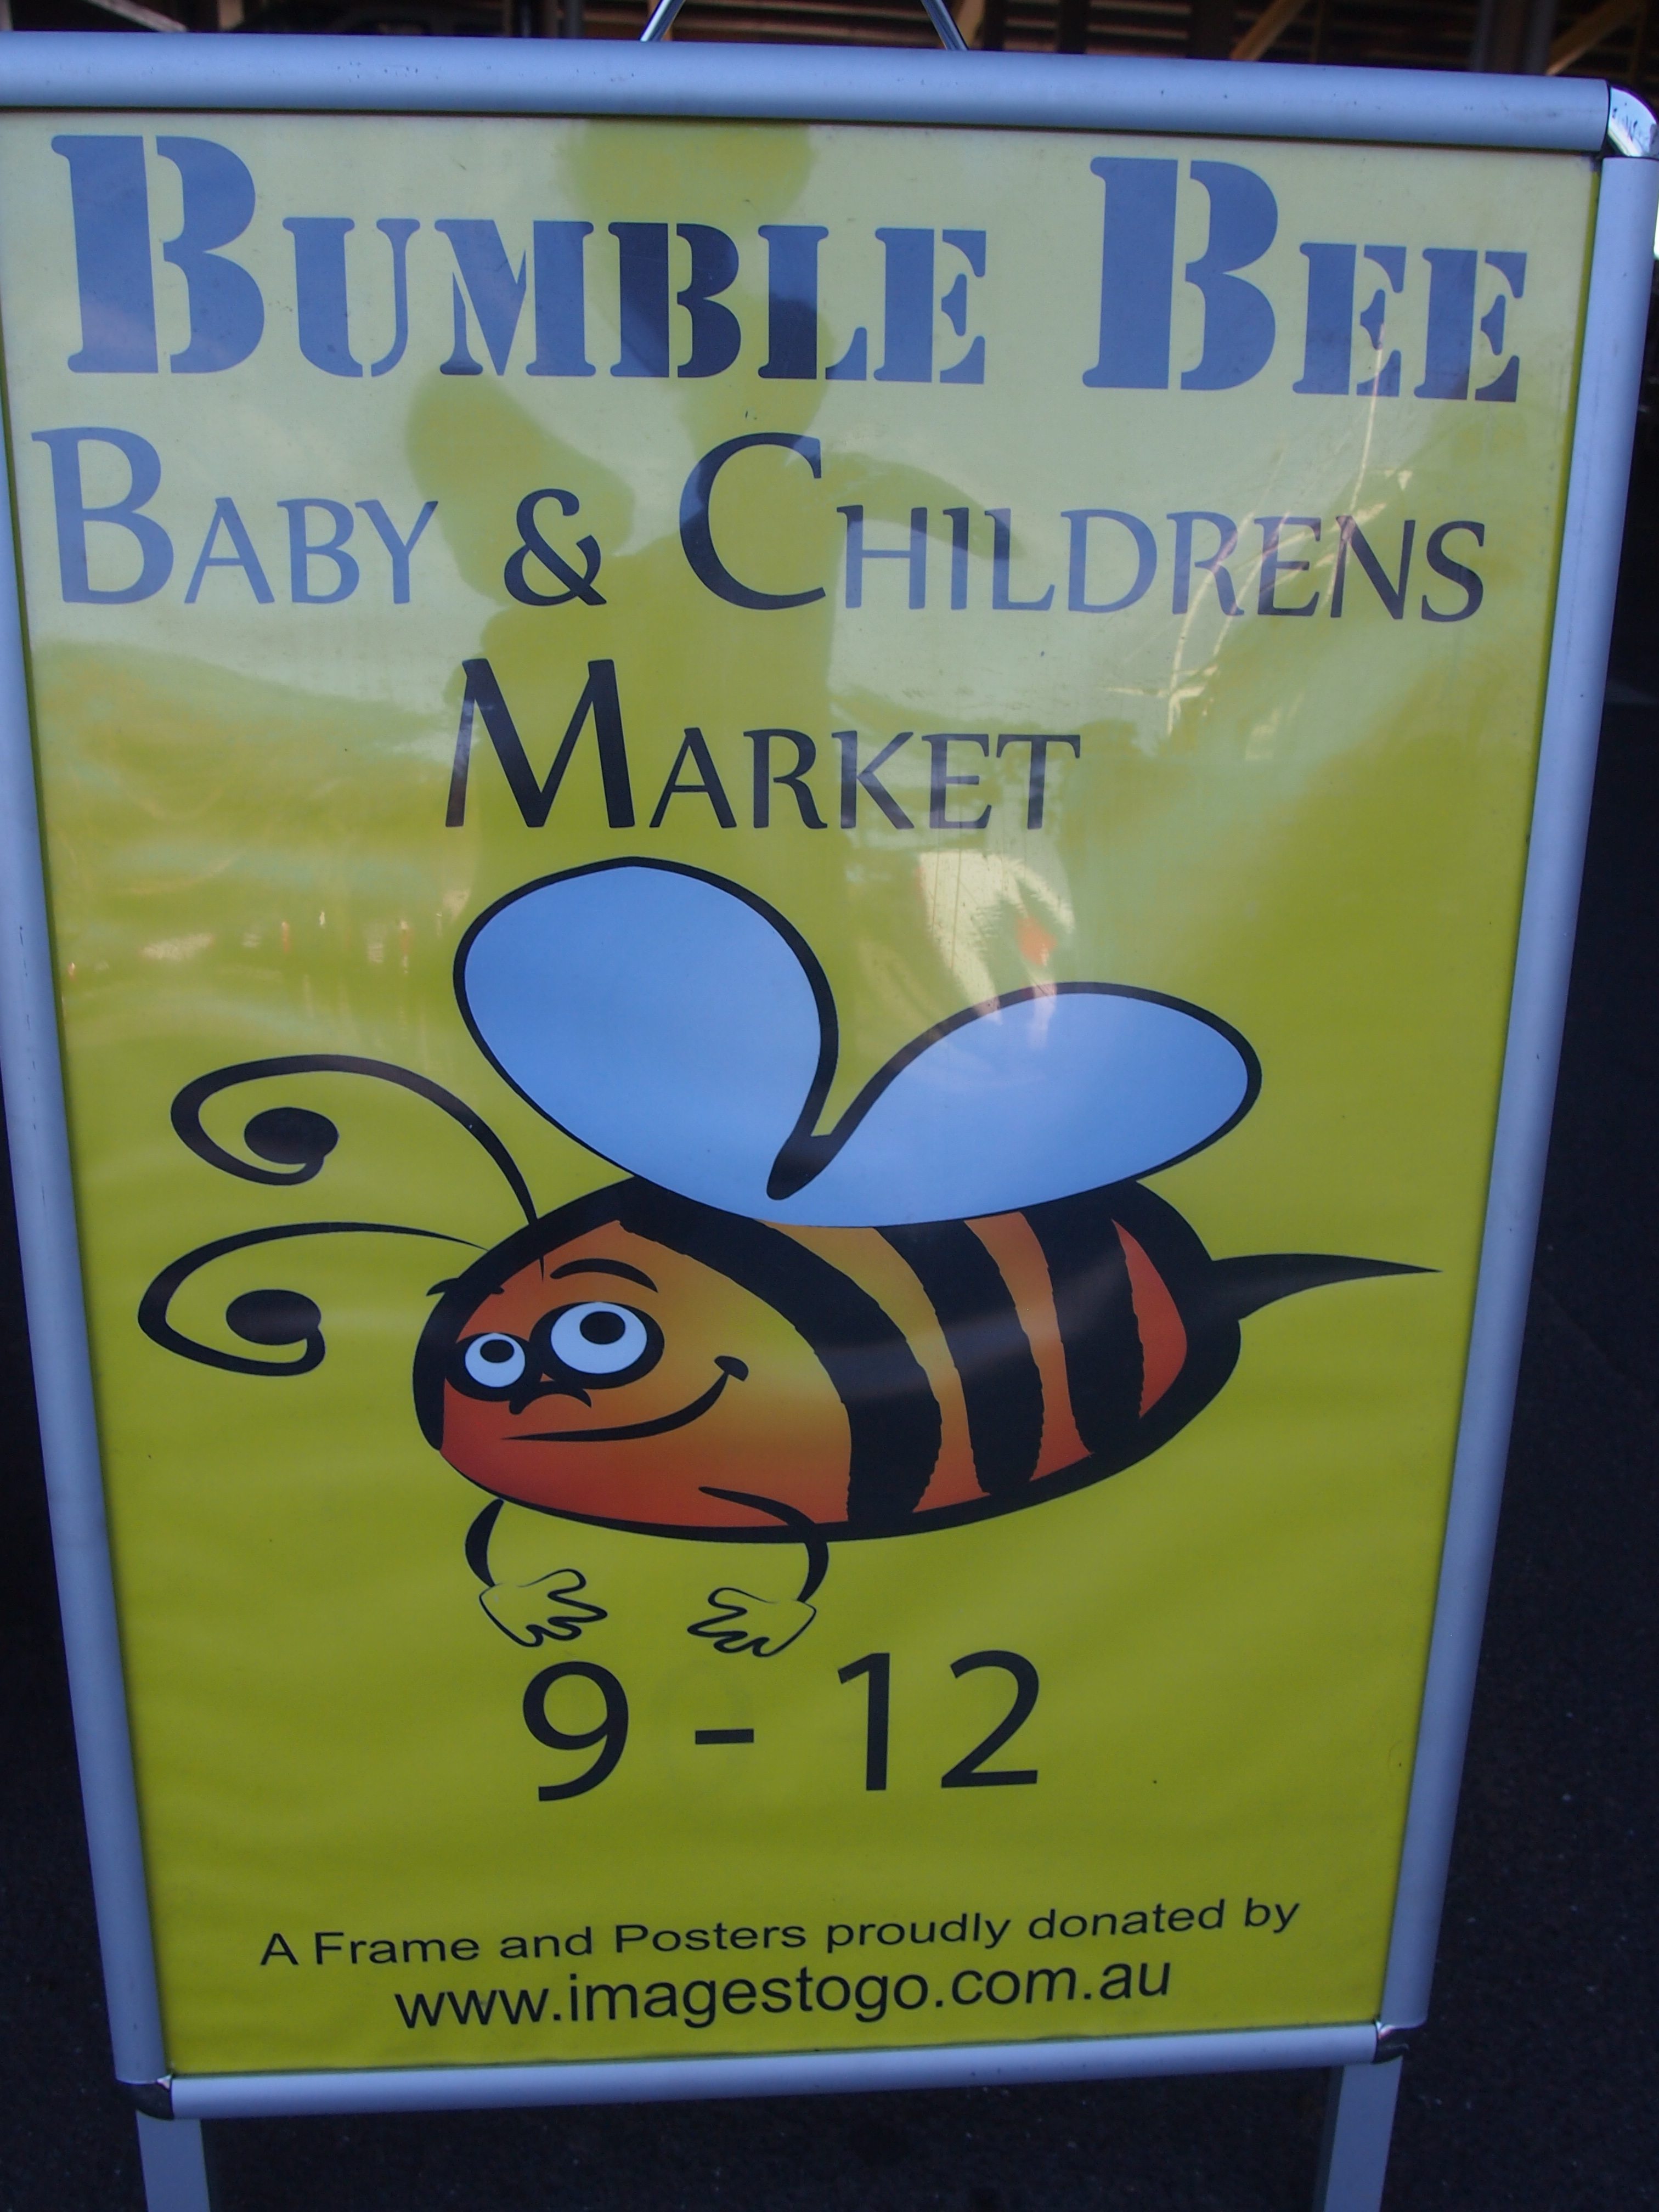 Cheap Baby Clothes Australia Bumble Bee Baby And Children 39s Markets Melbourne By